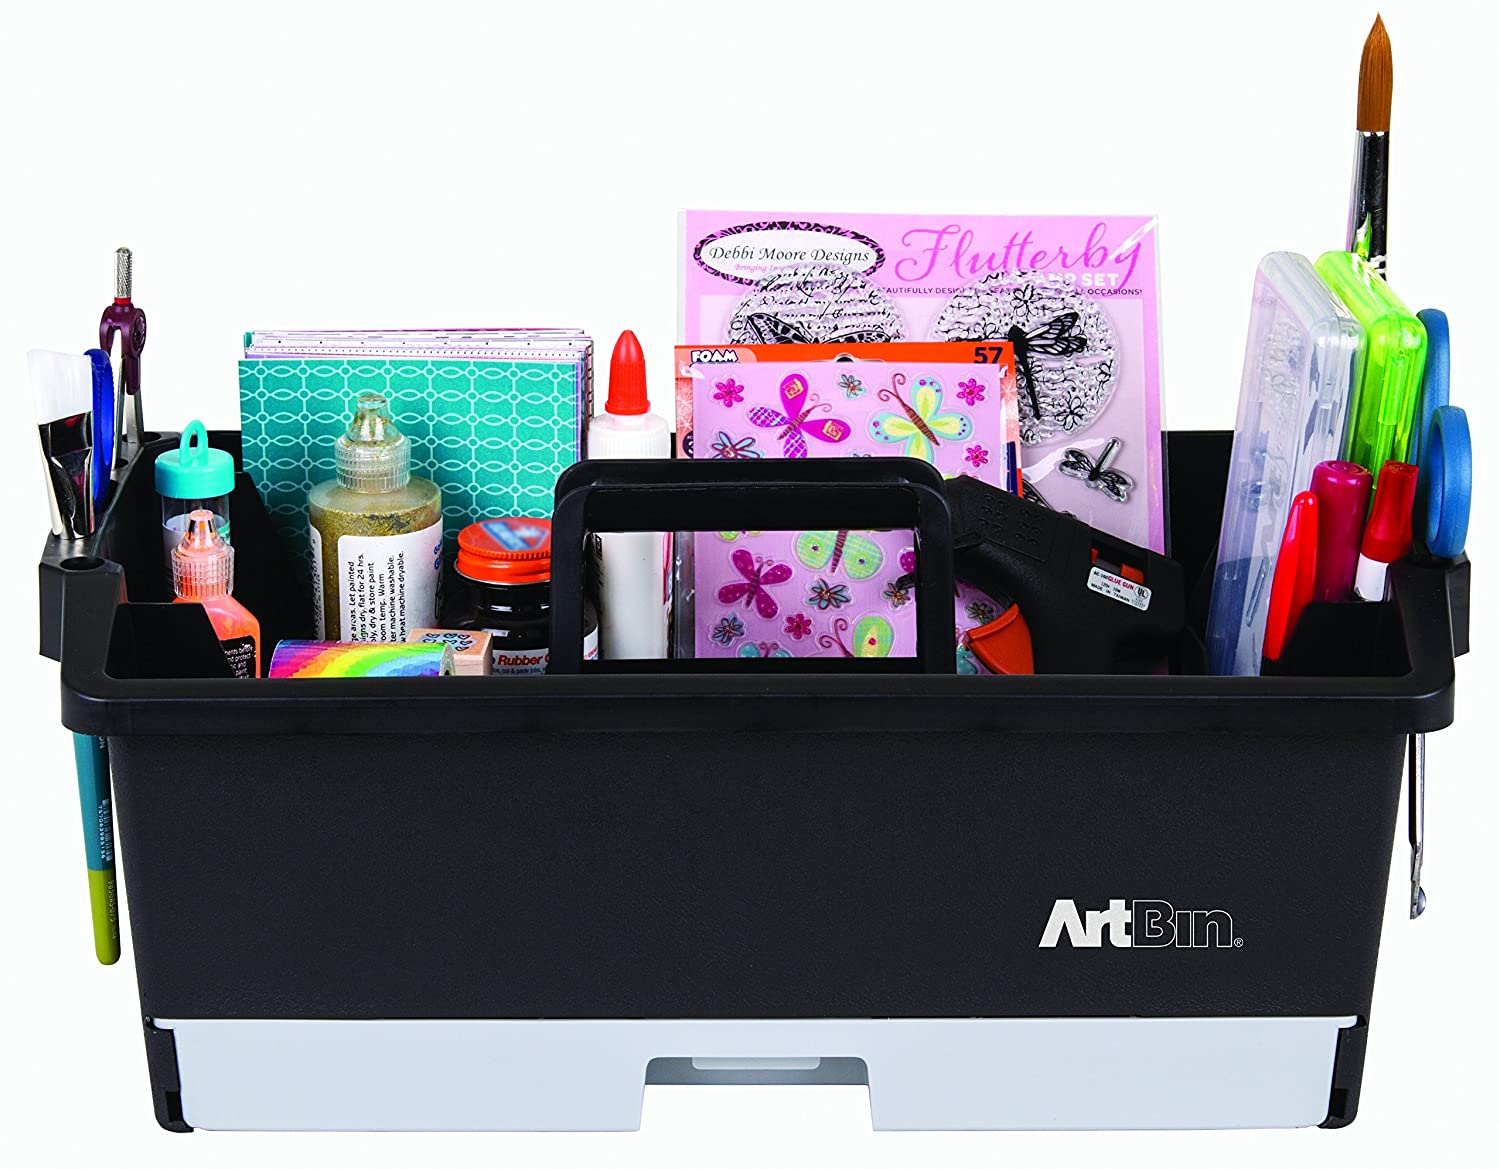 ArtBin Art/Craft Supply Caddy - black/Gray- 6963AG Flambeau Inc.